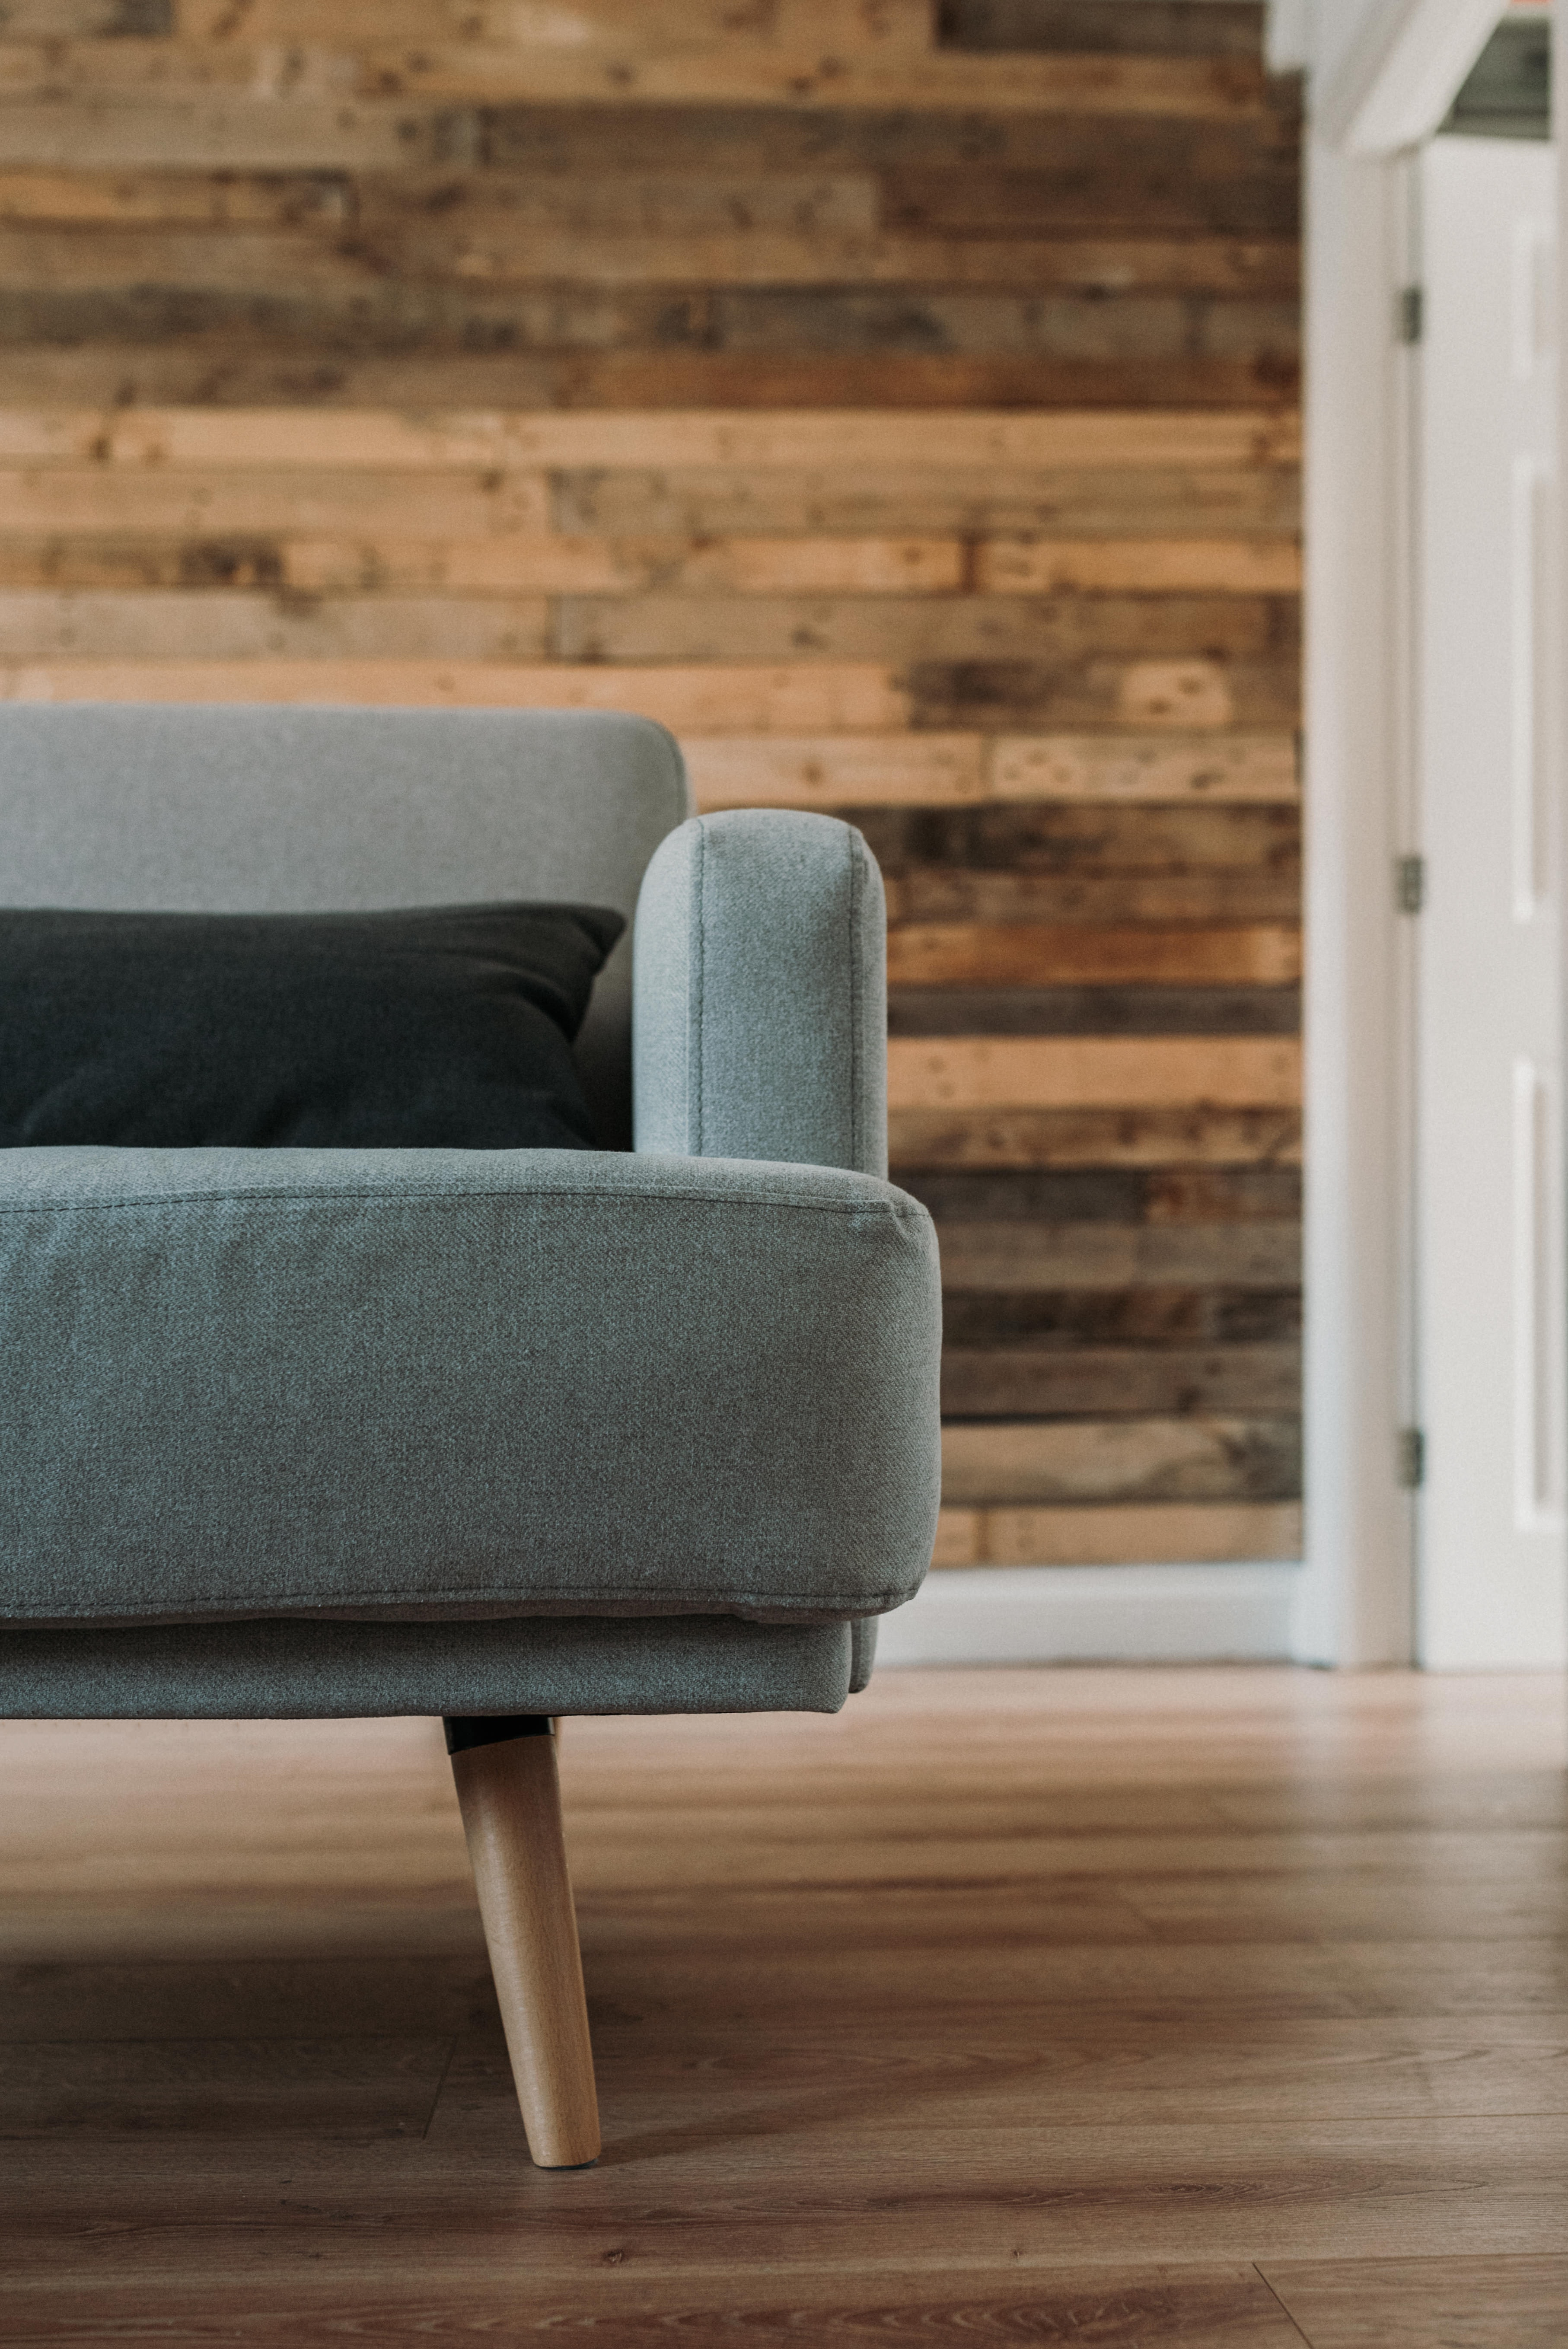 Clean Fabric Couch